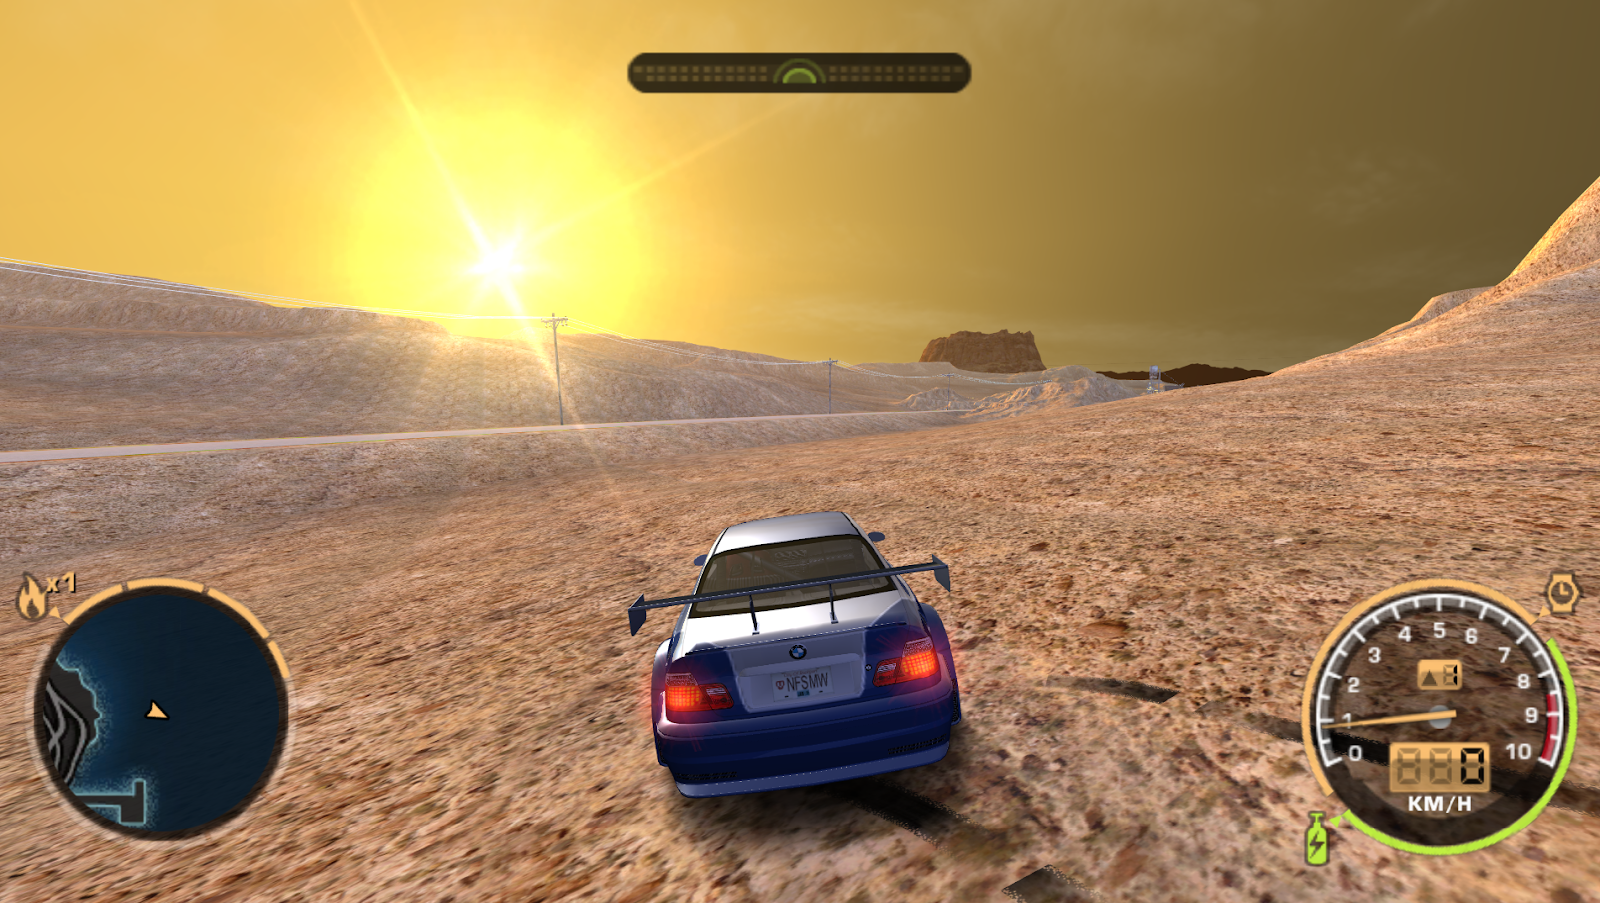 NFS-Toolkit #7 - Nevada Highway (ProStreet) to Most Wanted conversion